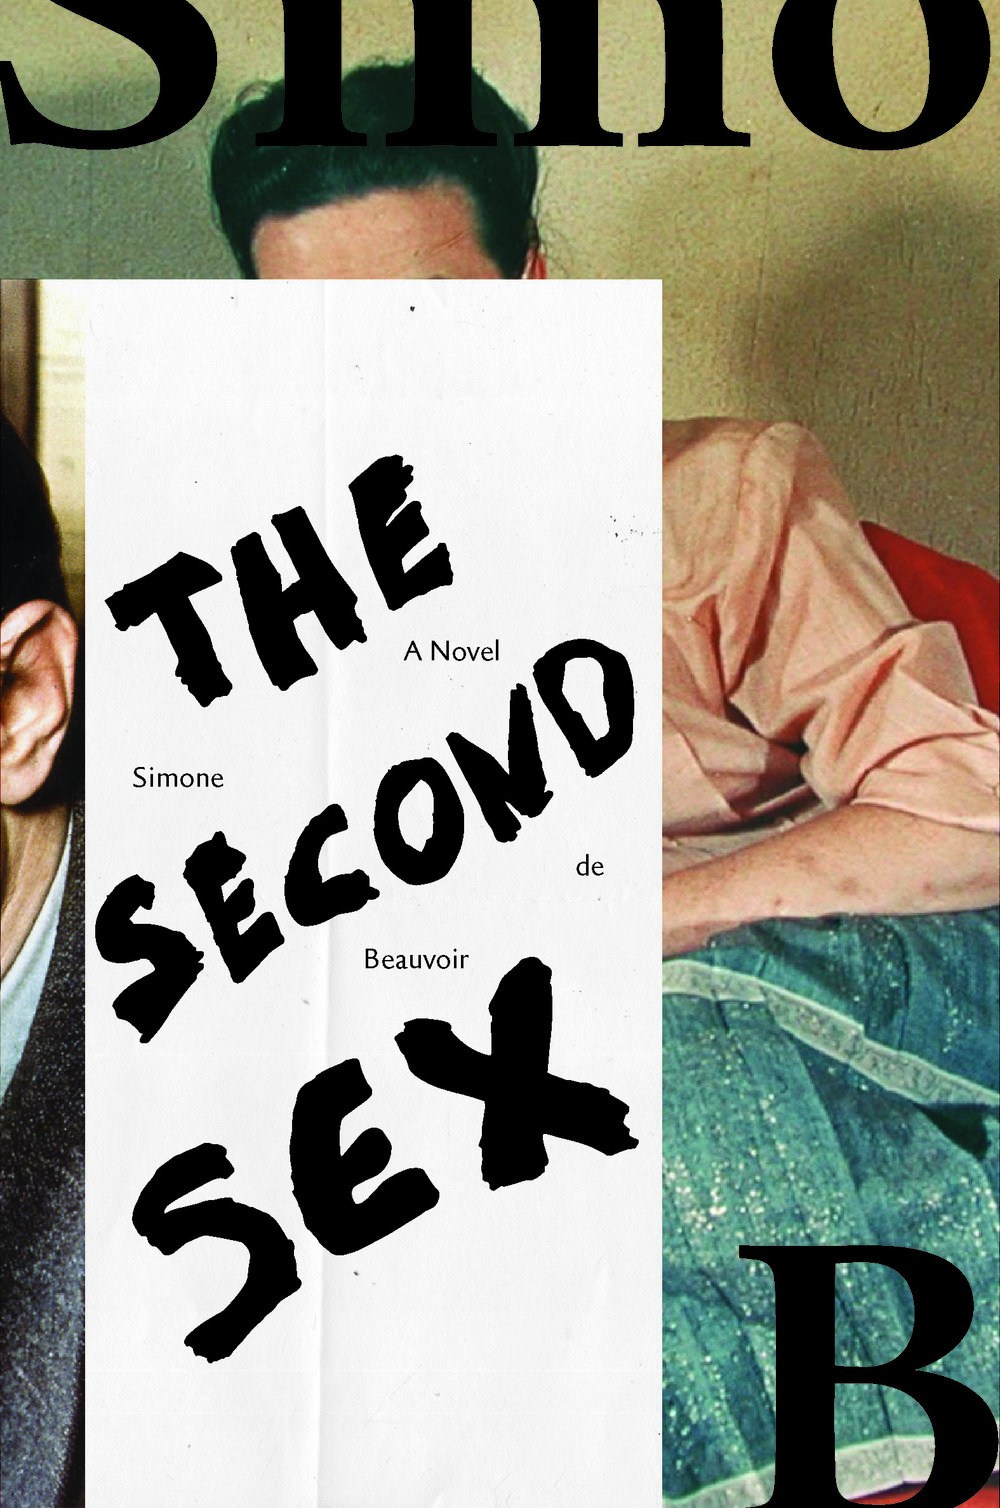 THE SECOND SEX Book Cover - New York